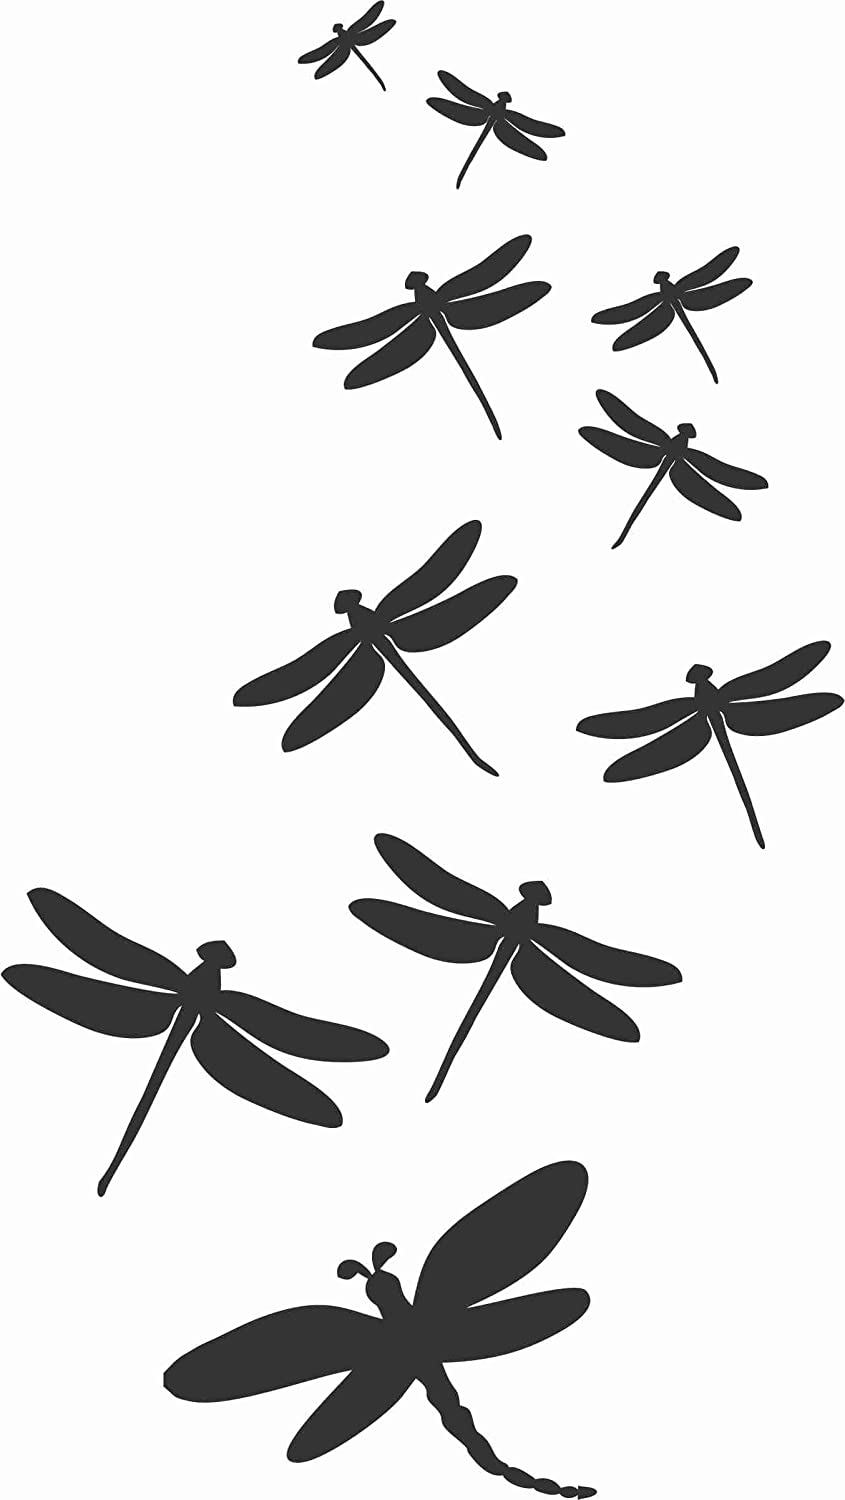 Amazon Com Matte Black Dragonfly Family Dragonflies Flying Die Cut Vinyl Window Decal Sticker For Car Truck 4 5 X8 Arts Crafts Sewing